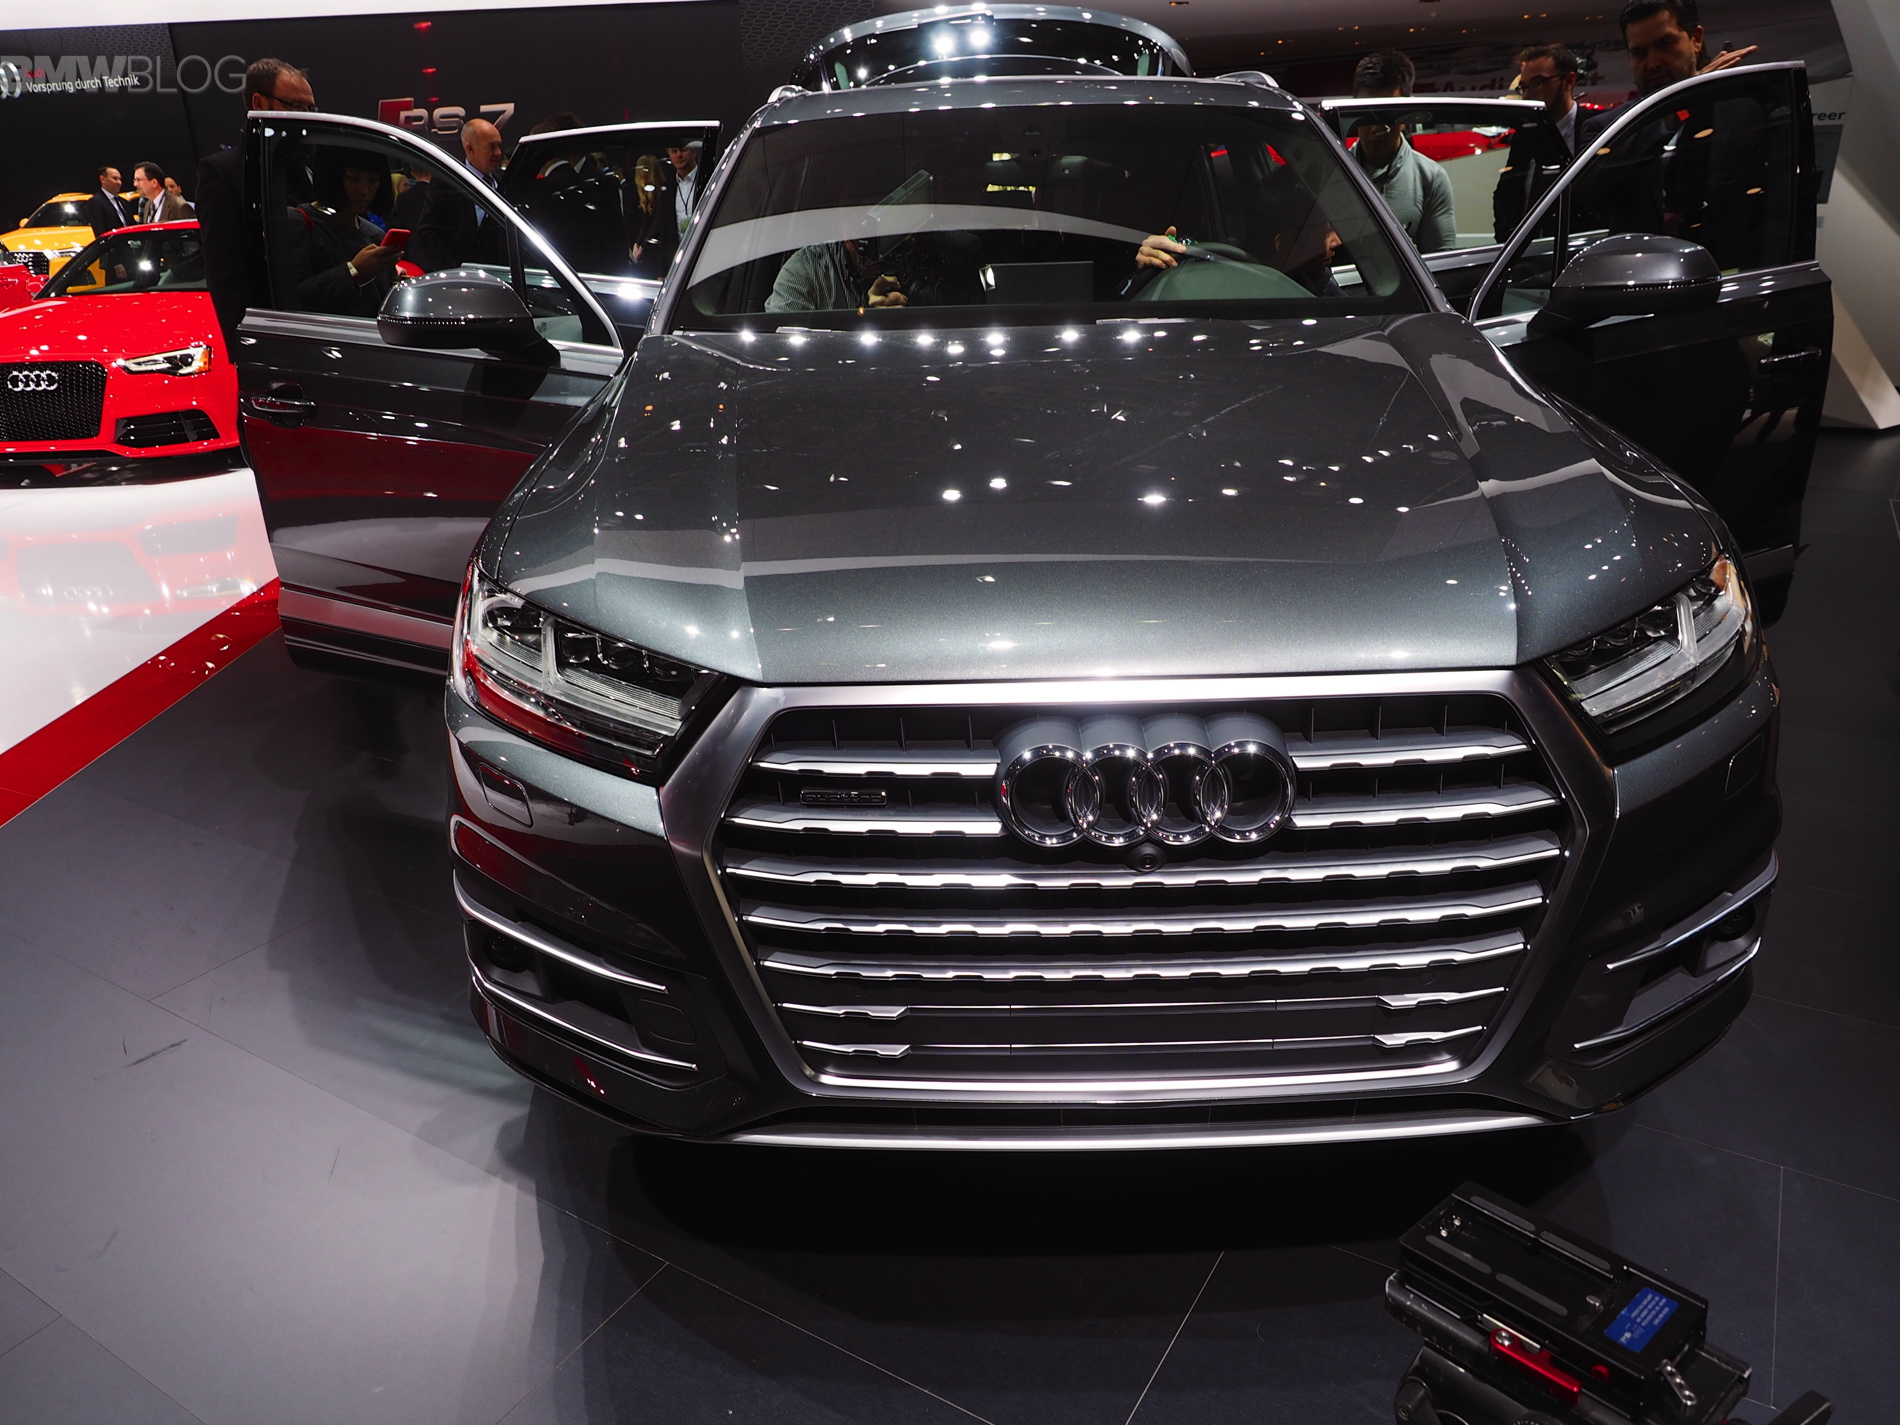 Naias Detroit Audi Q7 2015 Feiert Weltpremiere In Den Usa